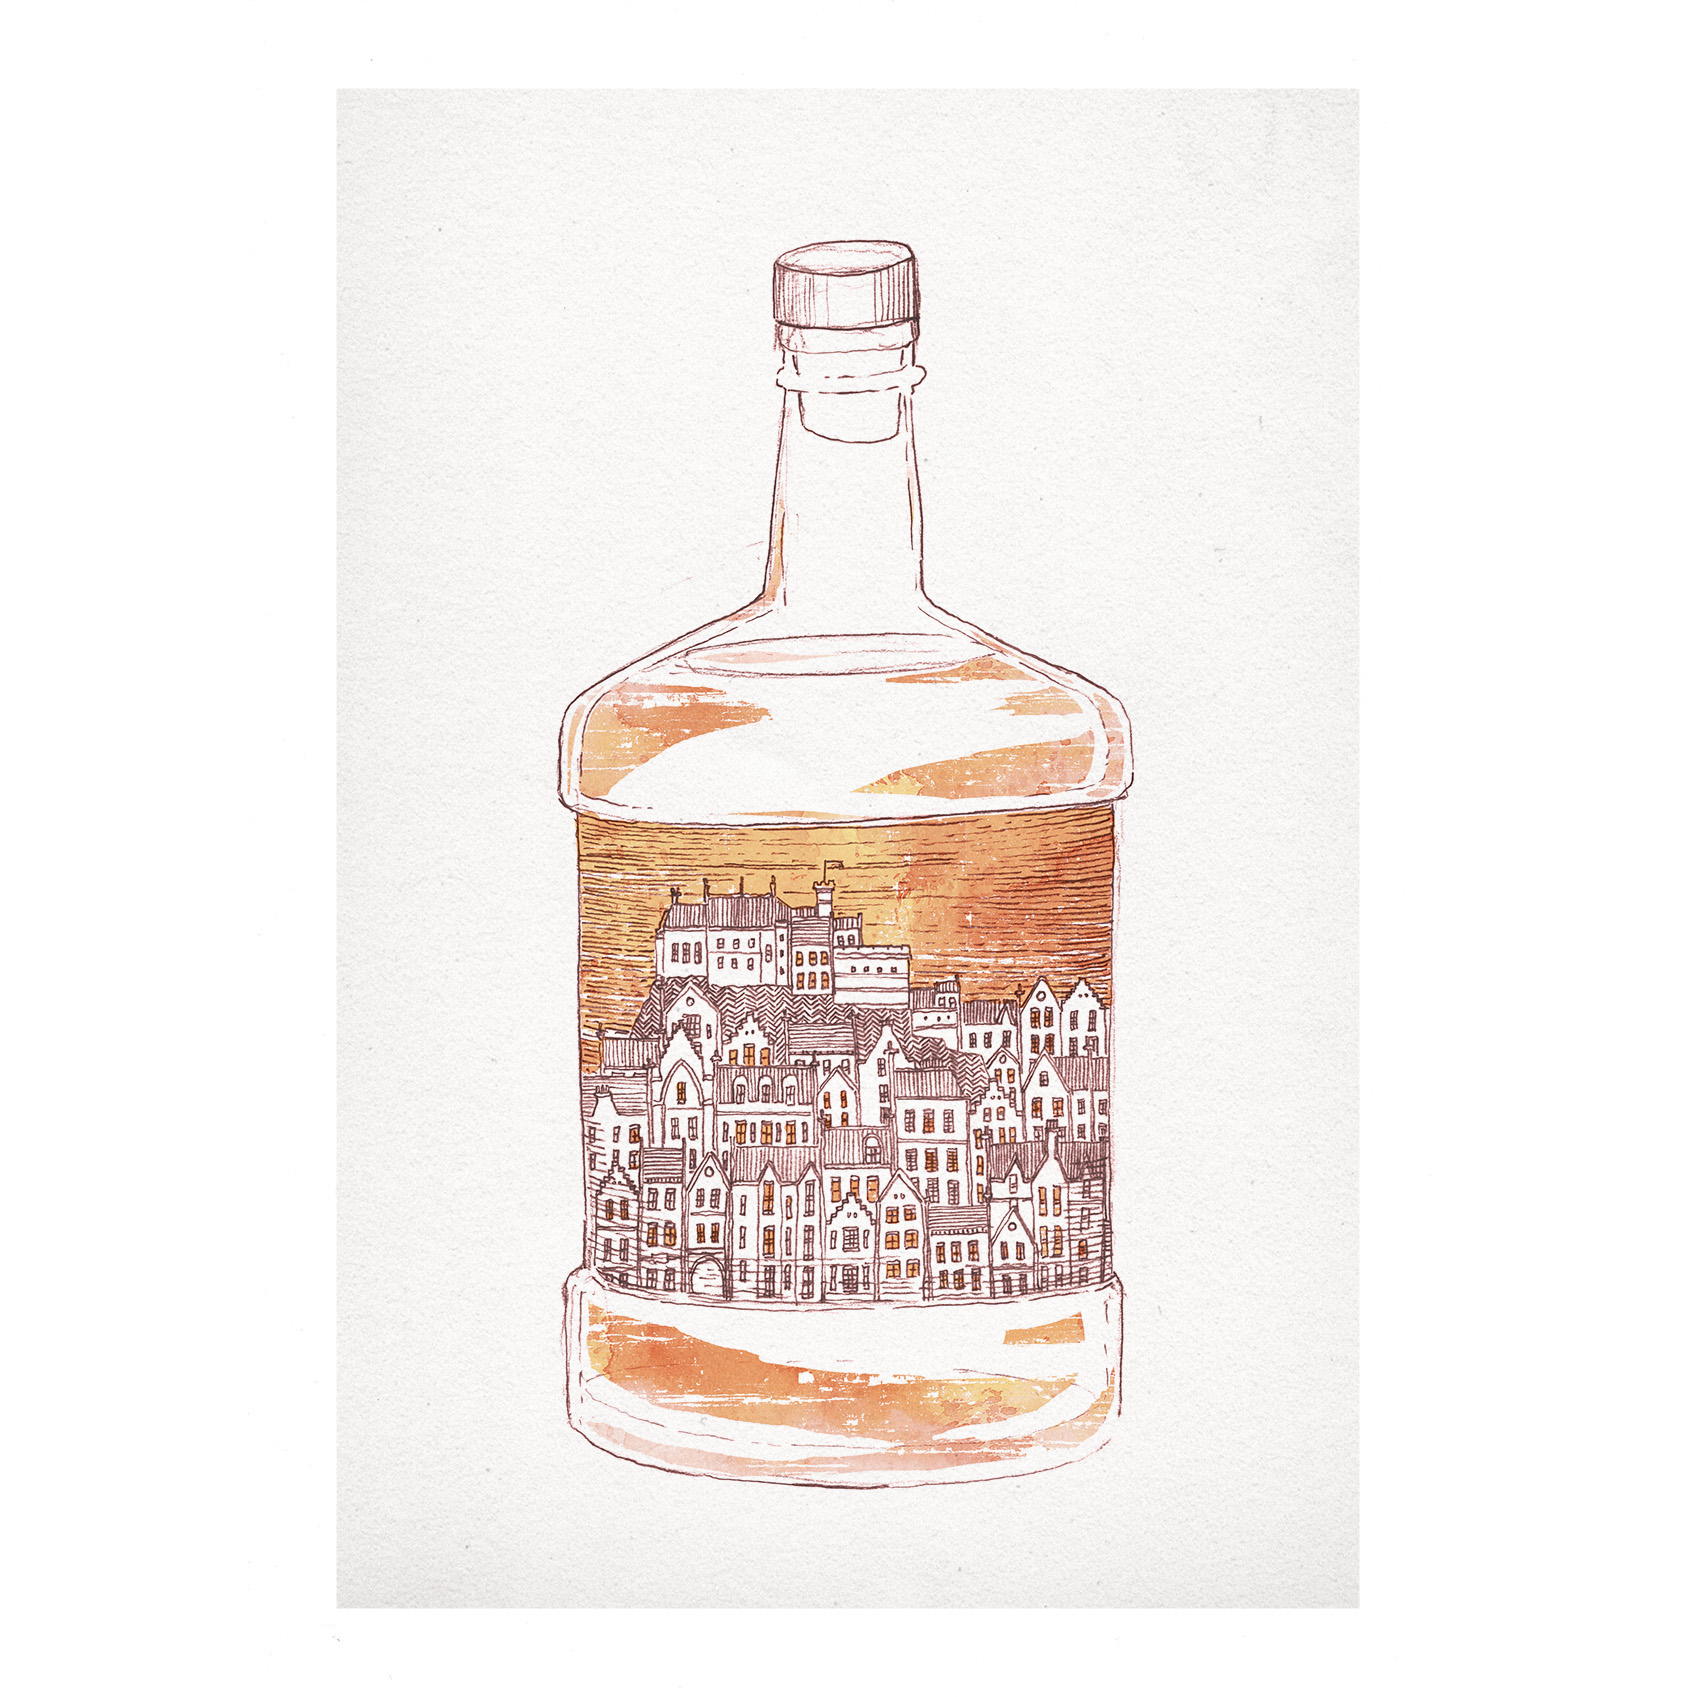 Edinburgh Old Town Whisky & New Town Gin prints at Red Door Gallery